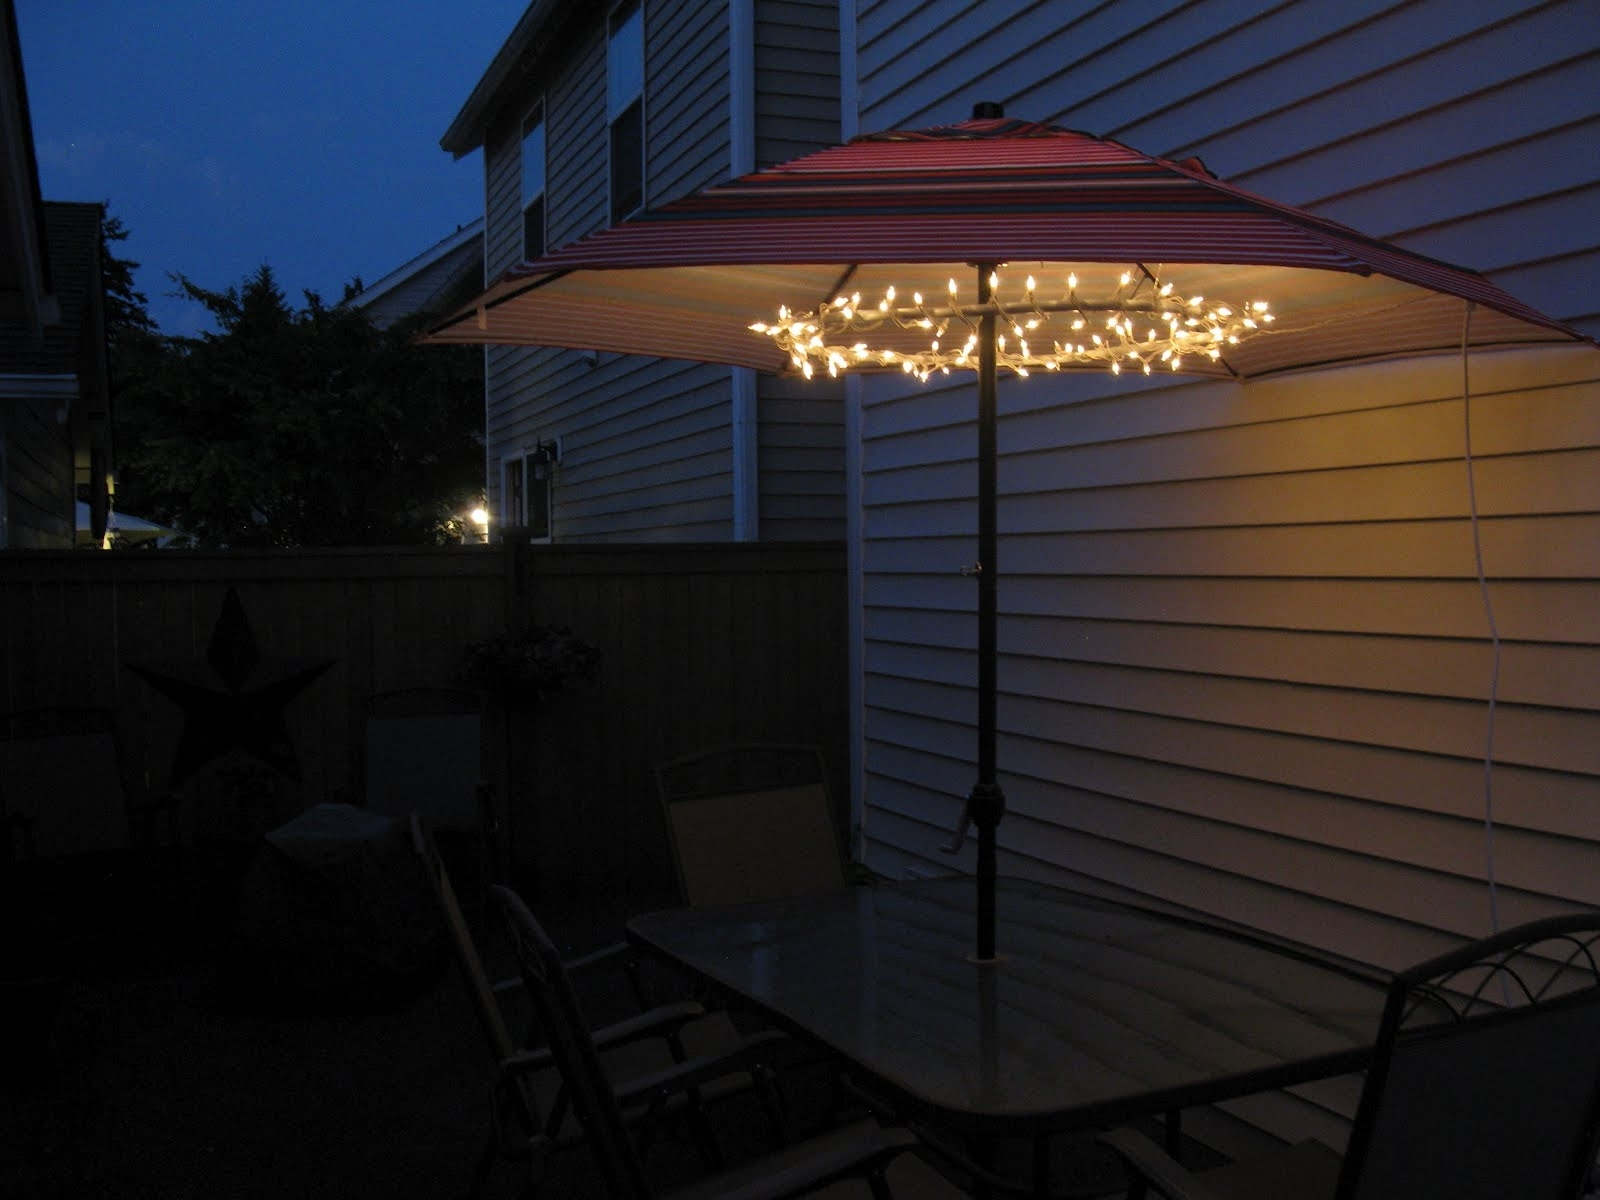 Patio Umbrellas With Lights With Regard To Most Current Great Patio Umbrellas With Lights Patio Umbrella Lights For The (View 8 of 20)